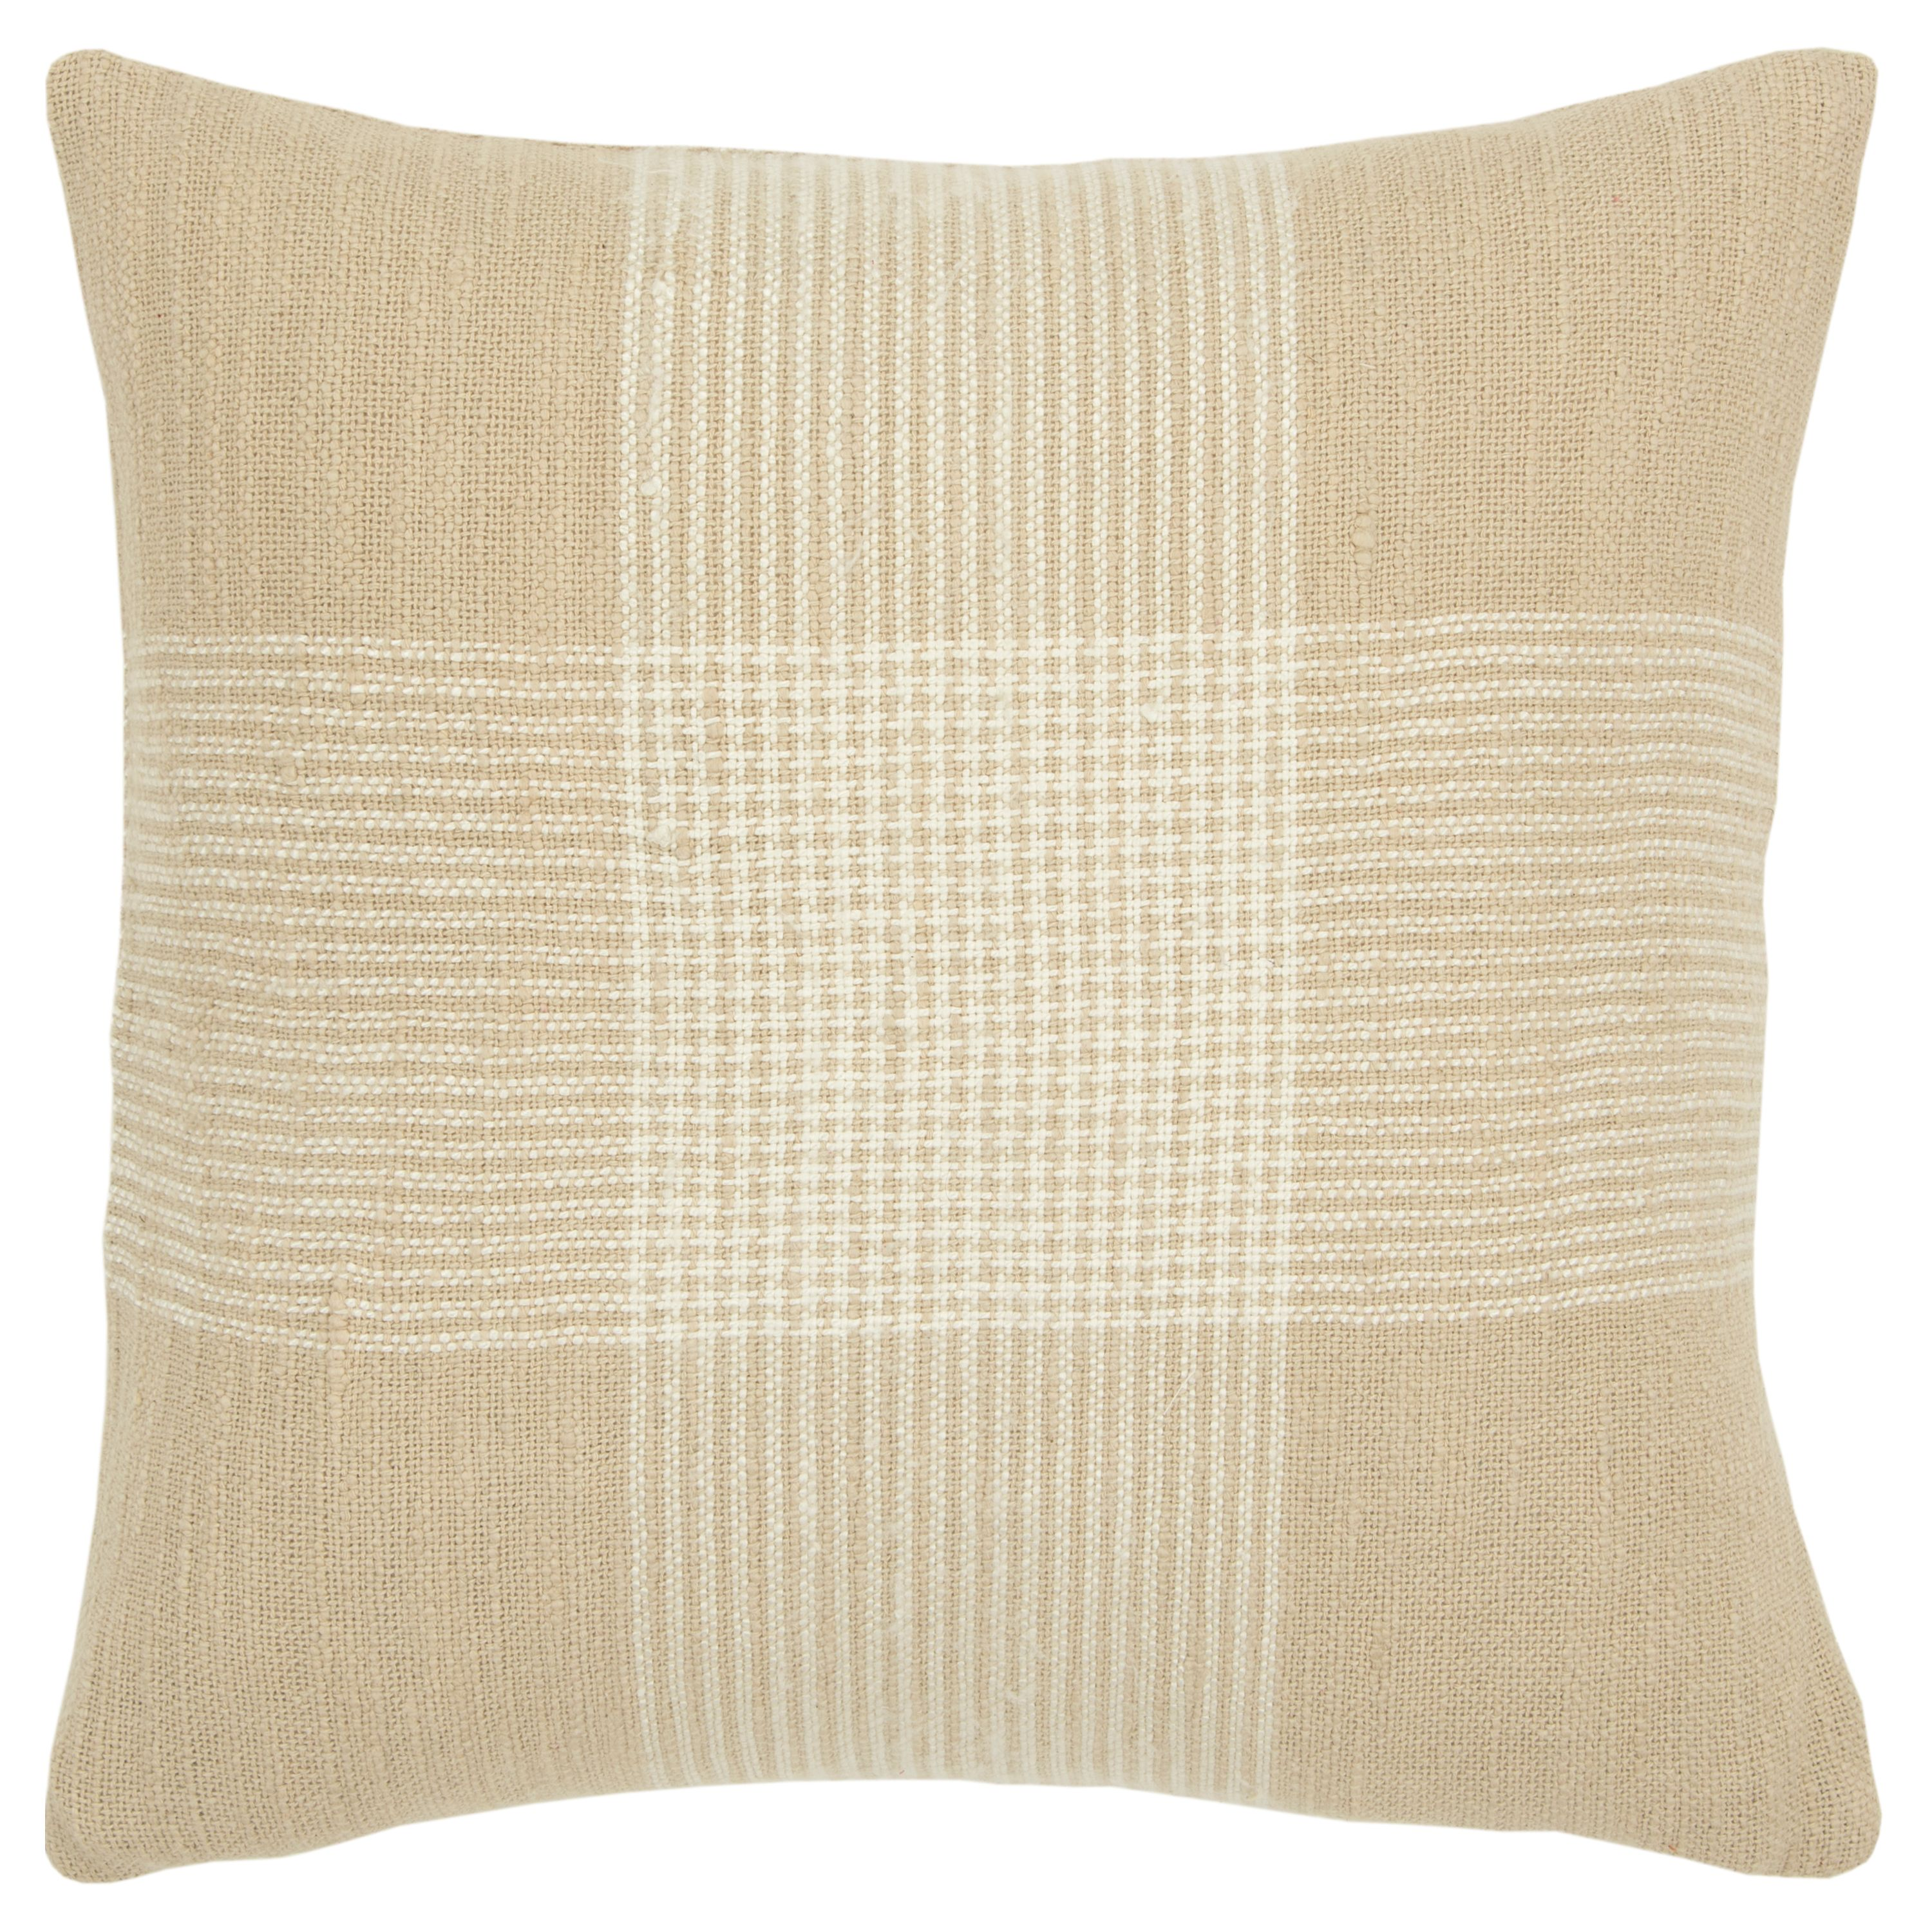 "Rizzy Home Decorative Poly Filled Throw Pillow Plaid 20""X20"" Natural"